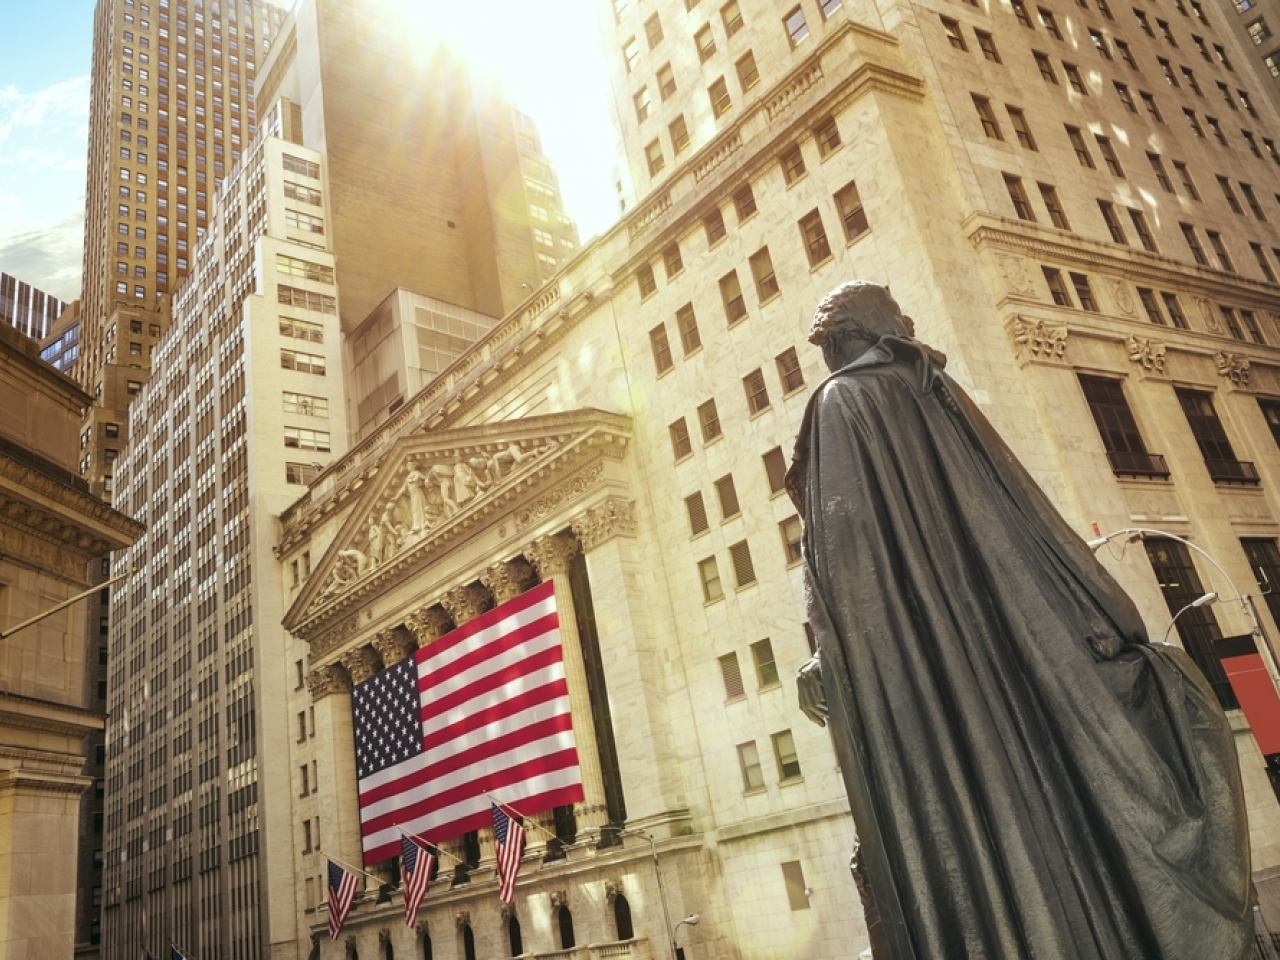 Inflation uncertainty has left Wall Street largely flat through the week. File image: Shutterstock